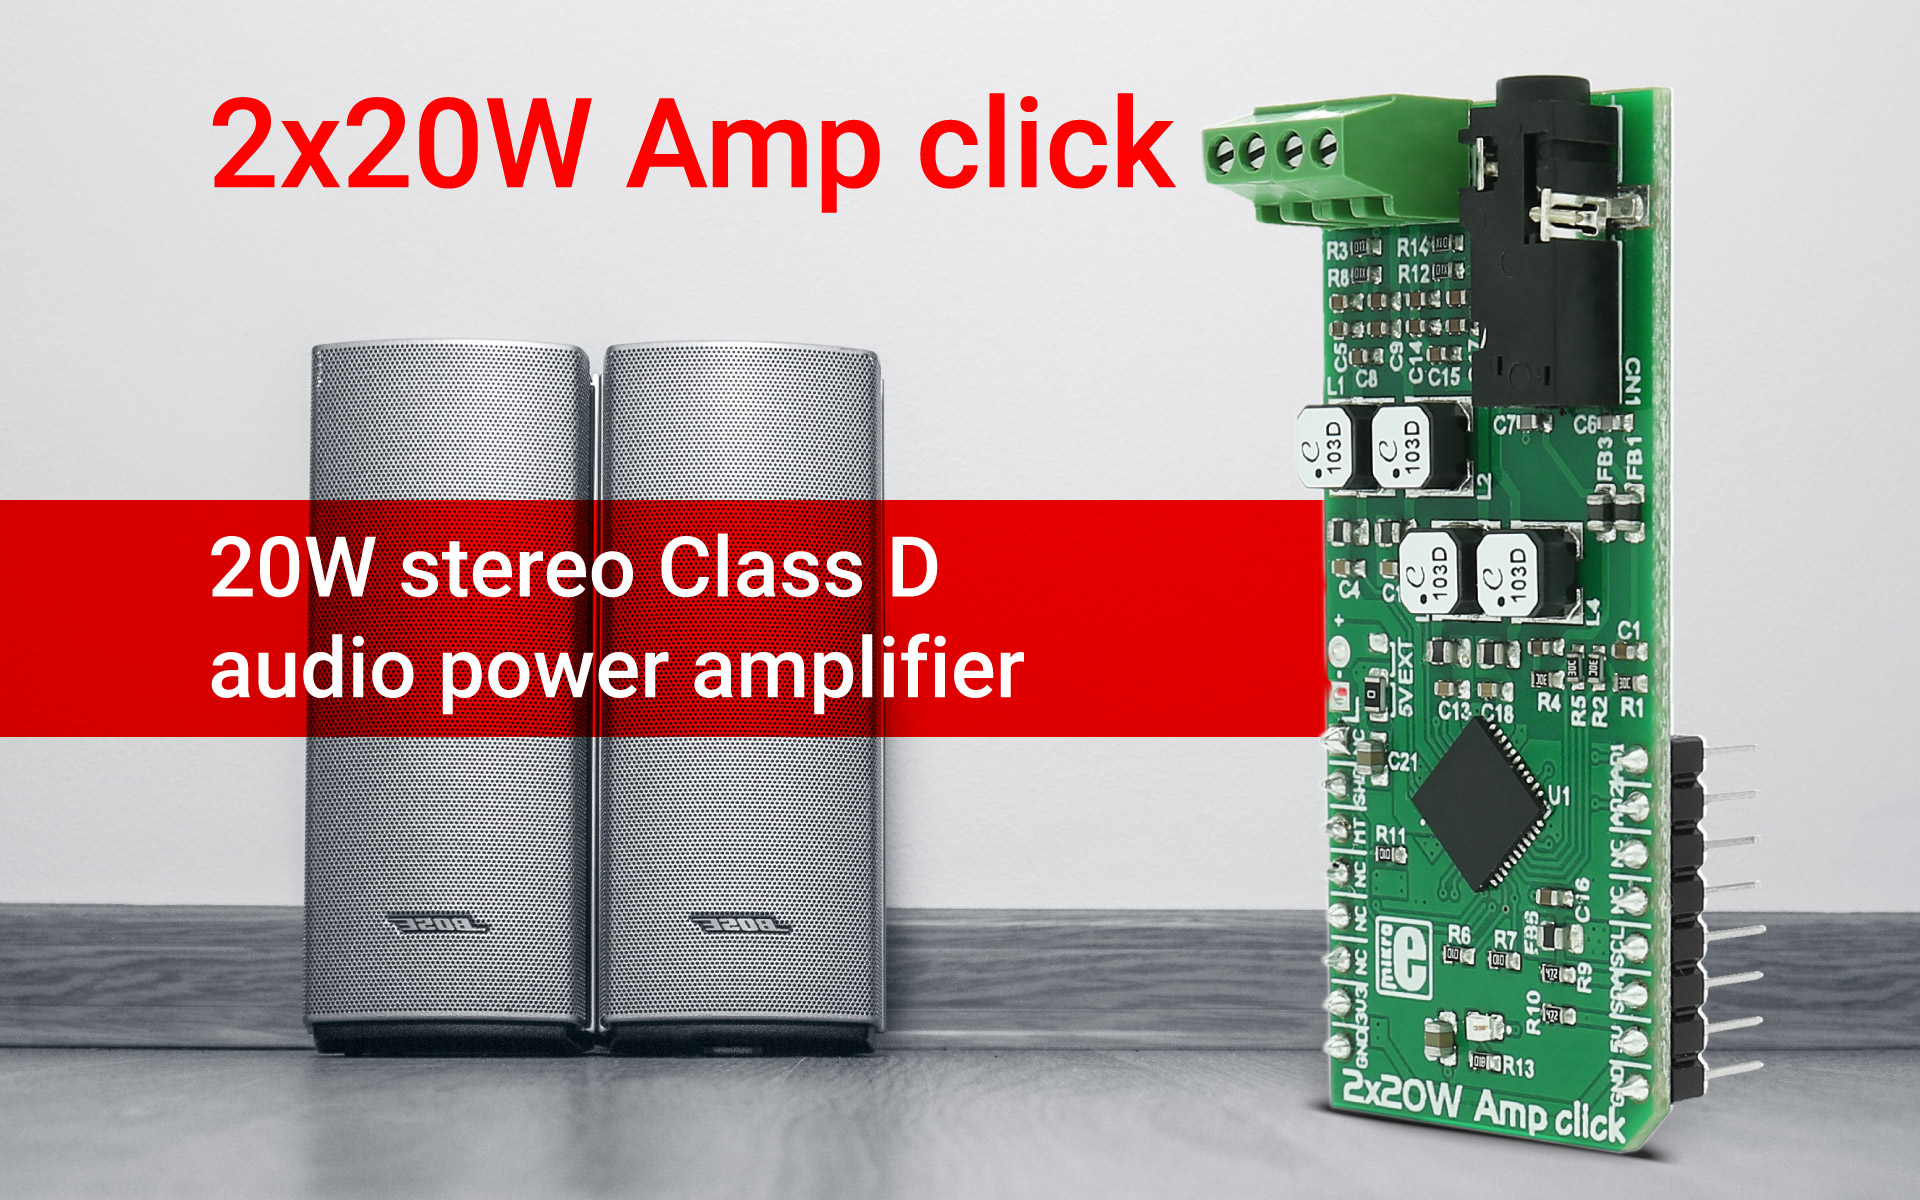 2x20W Amp click - 20W, stereo, high-performance digital amplifier